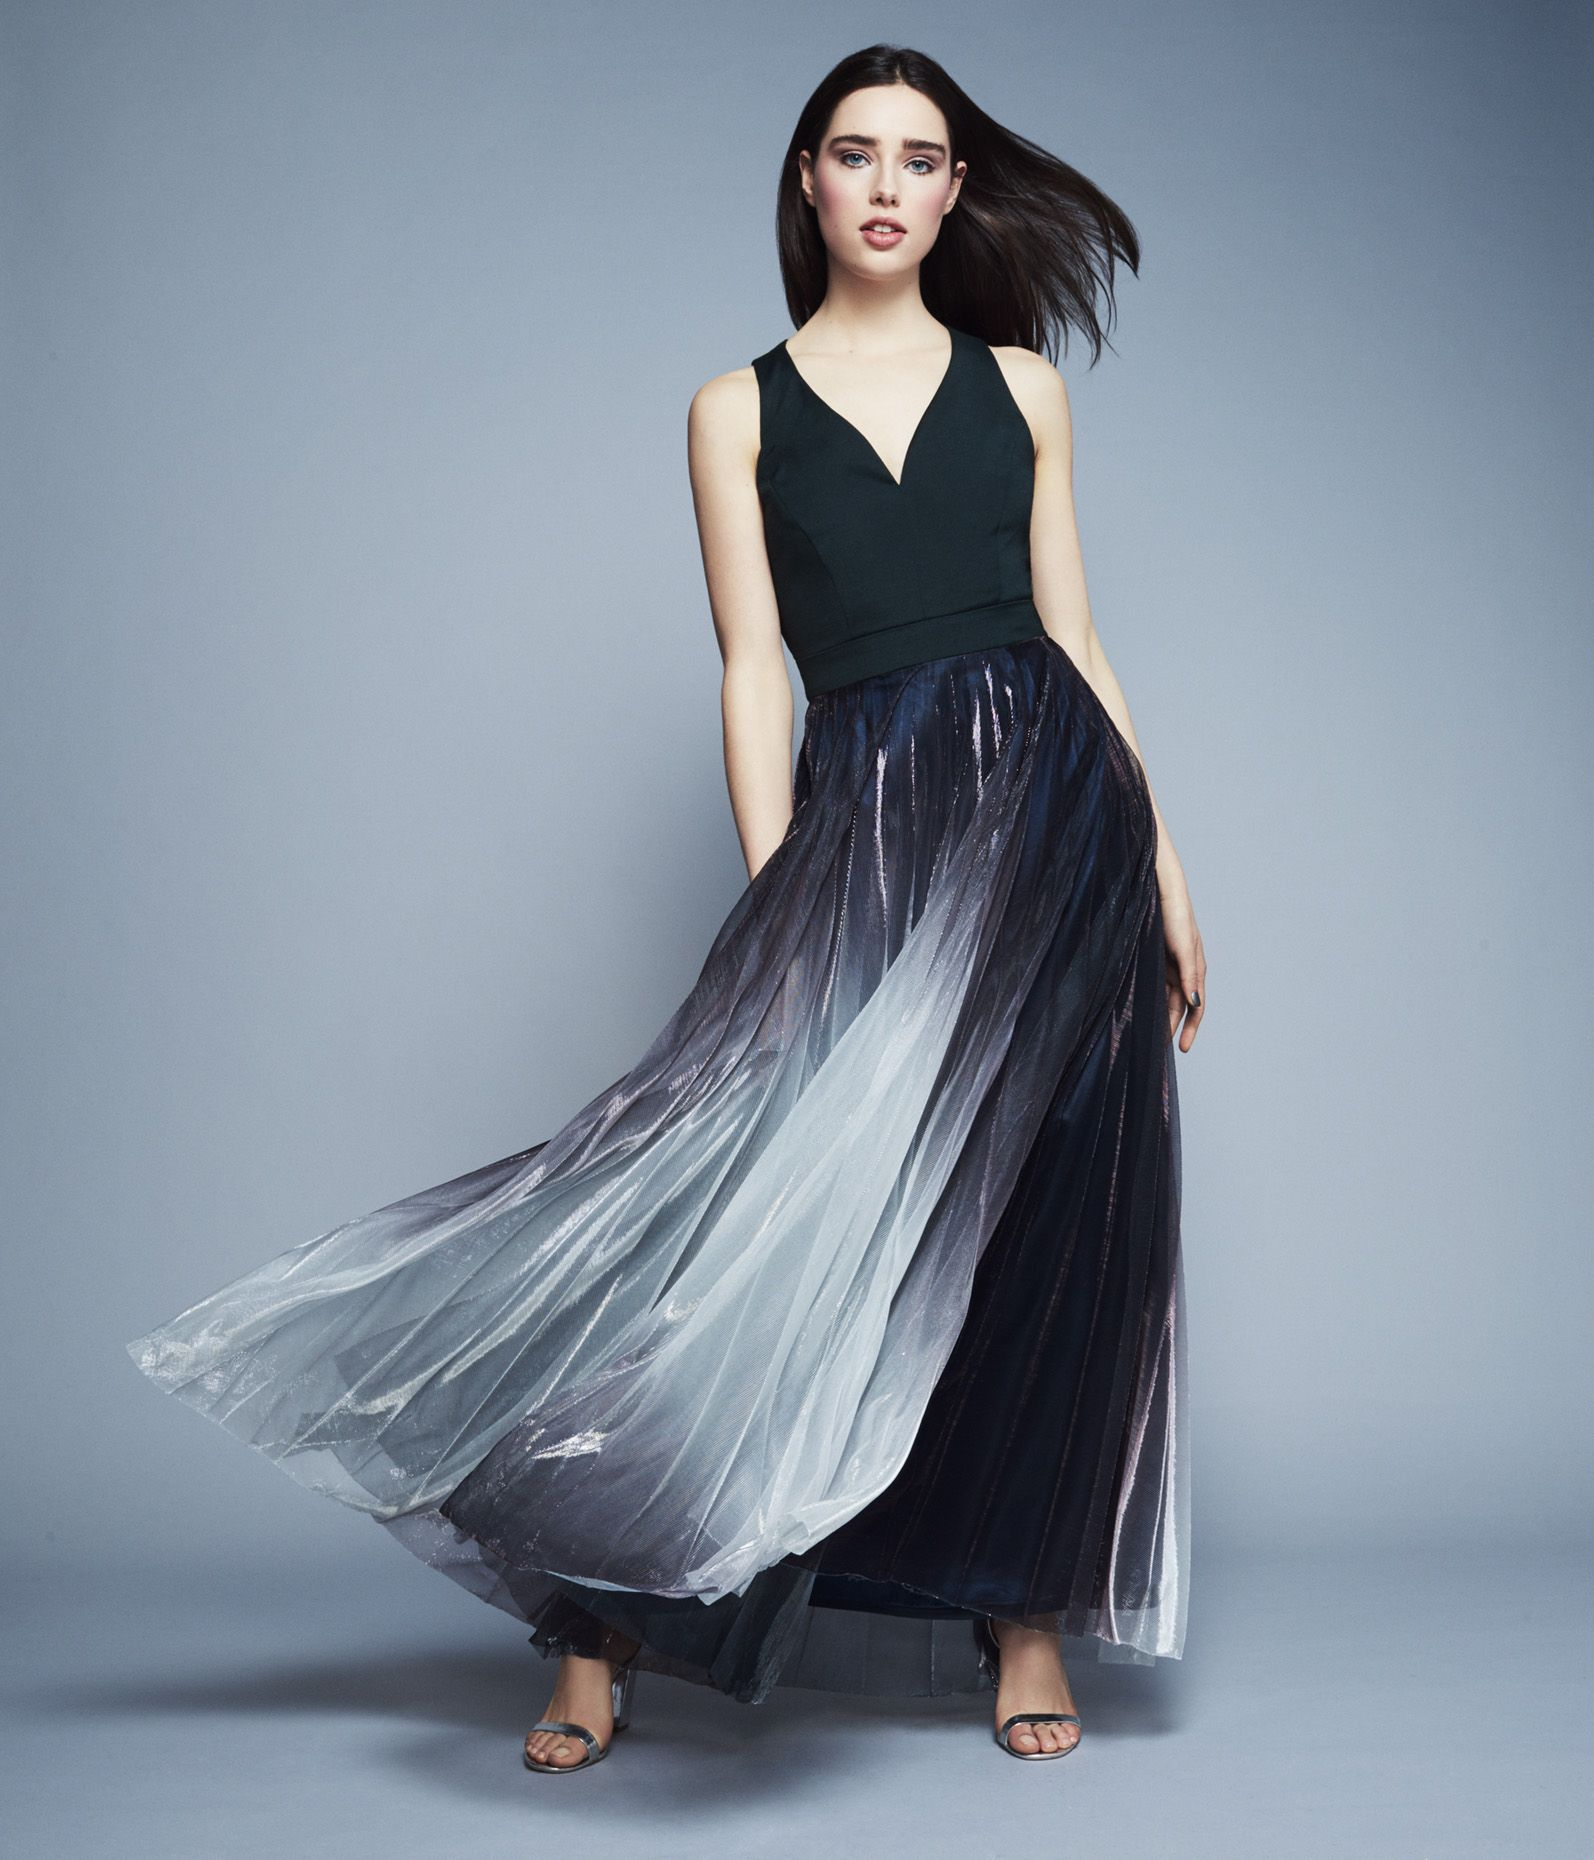 Dresses to wear to a fall wedding for a guest  Roma Maxi Dress Coast AW Collection  Black Tie Ready  Pinterest